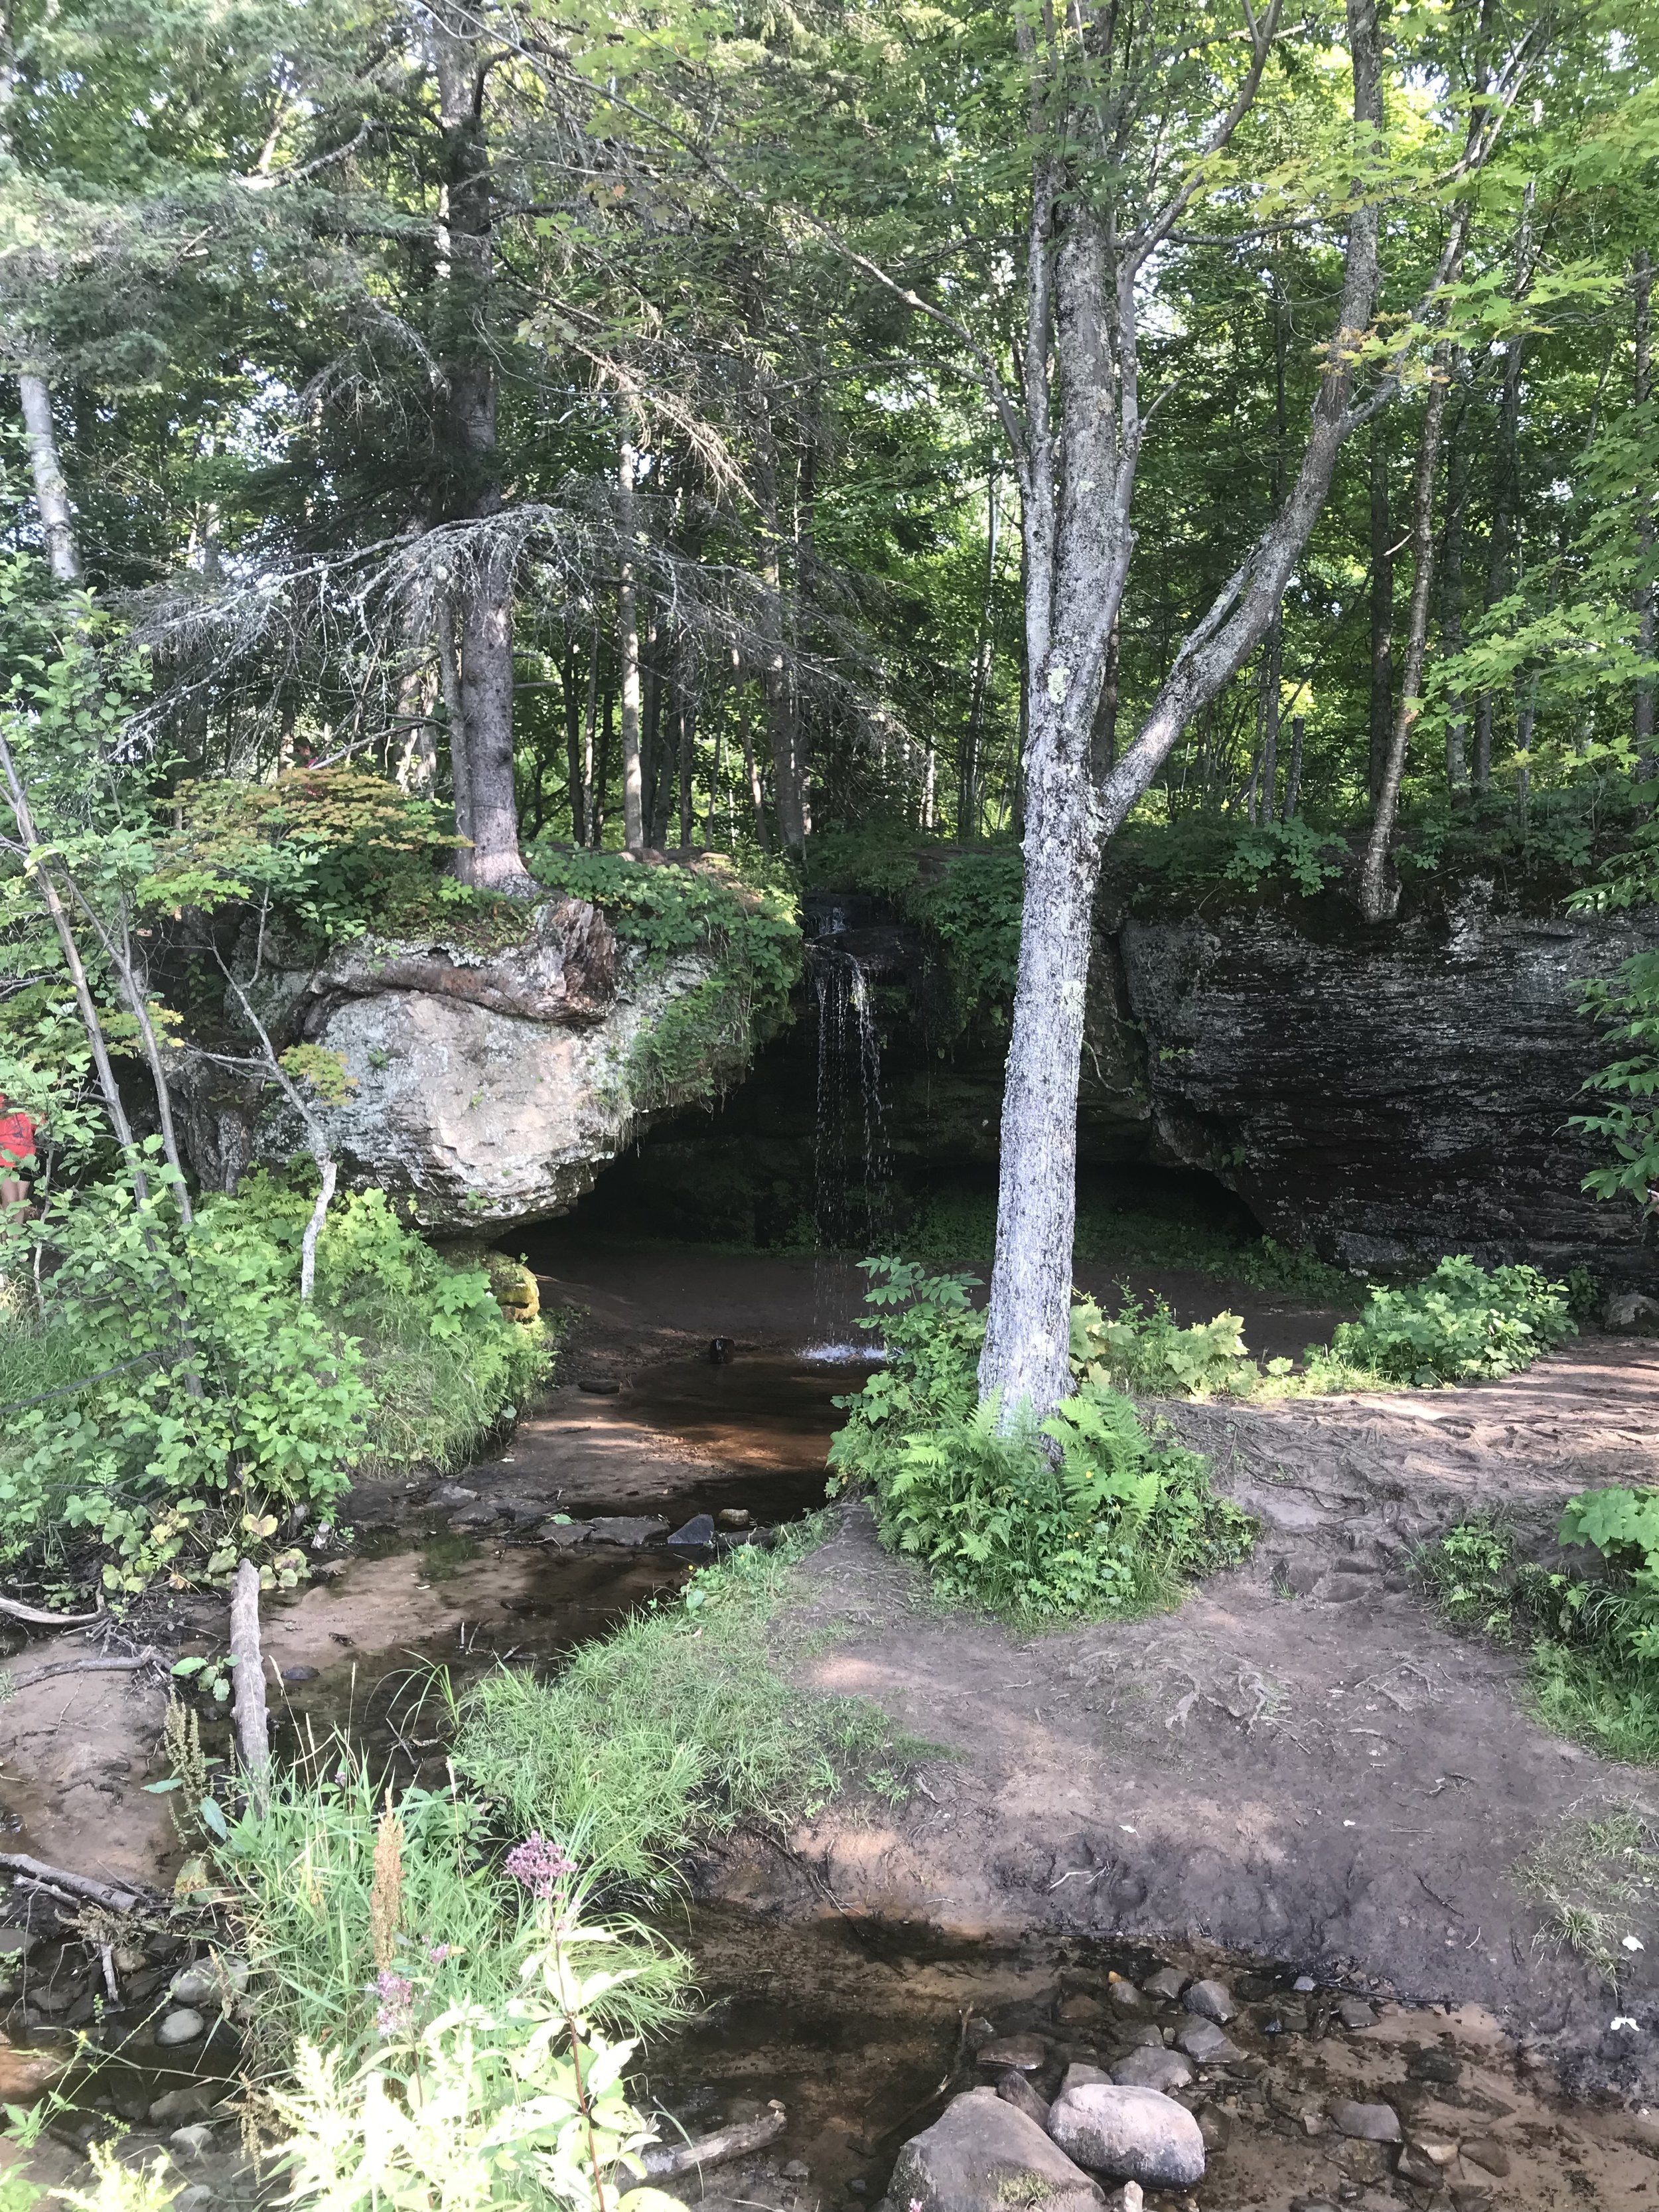 One thing I LOVE about the U.P. - roadside waterfalls!